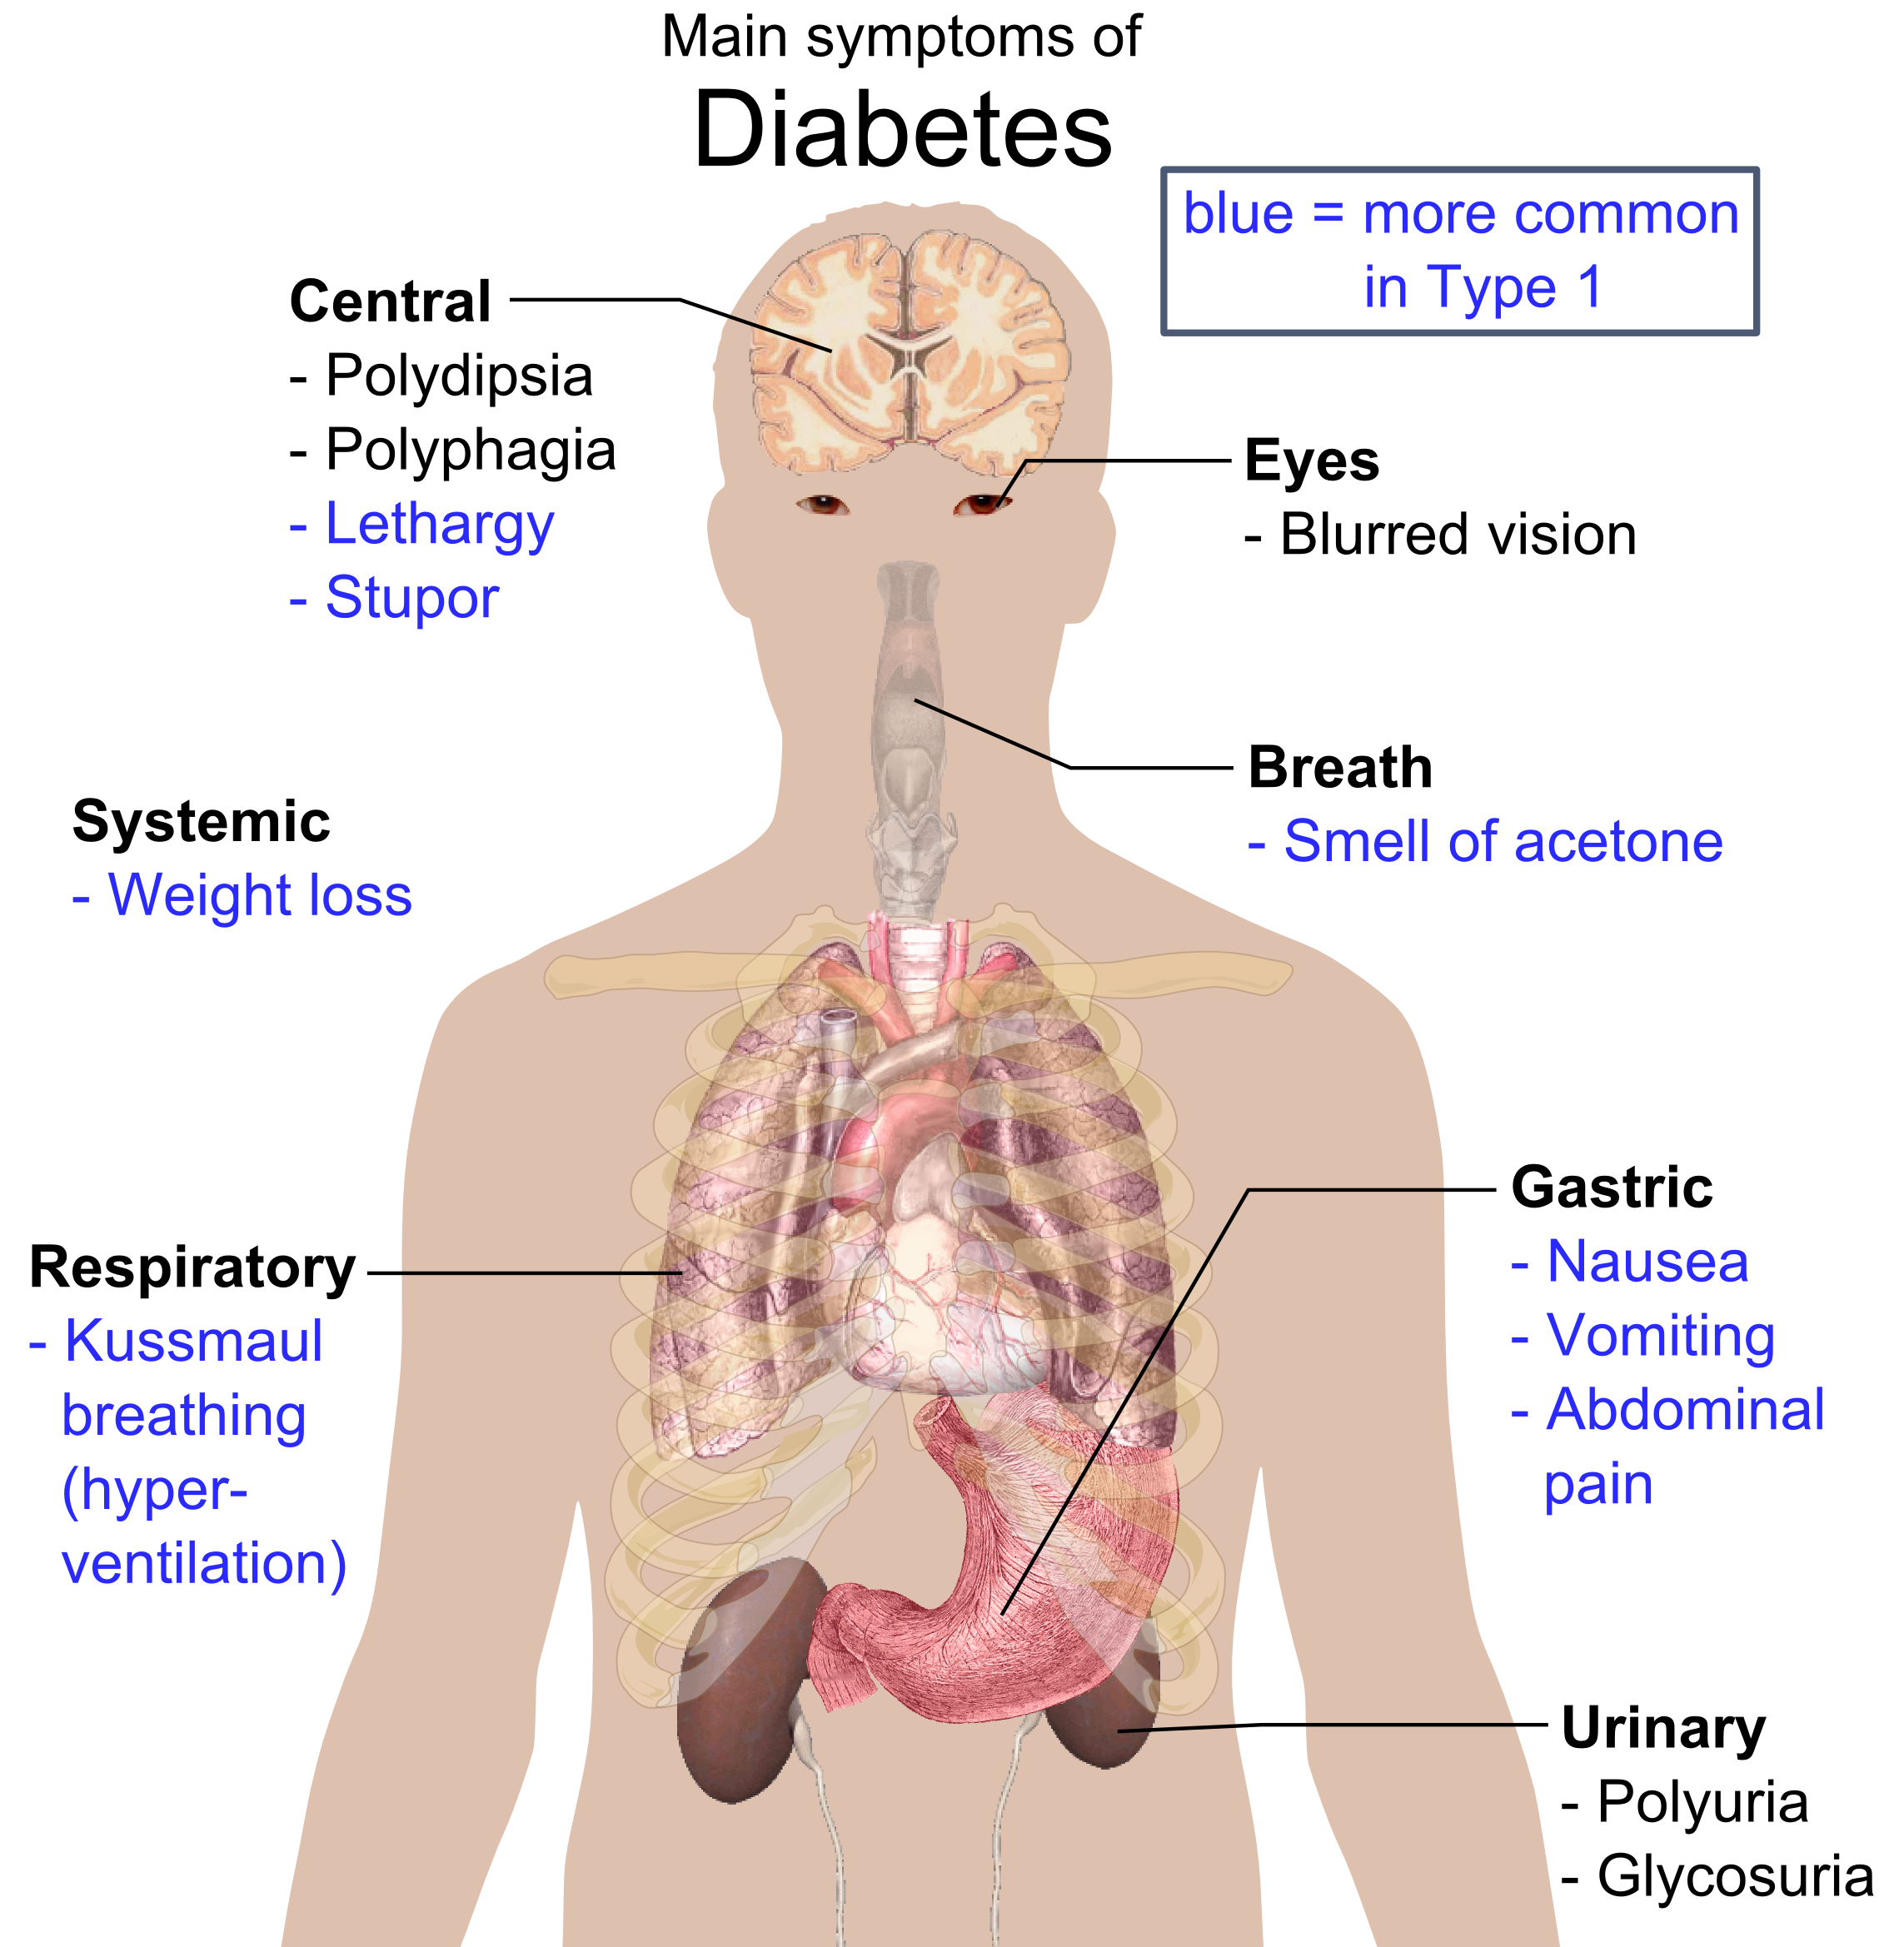 File:Main symptoms of diabetes.png